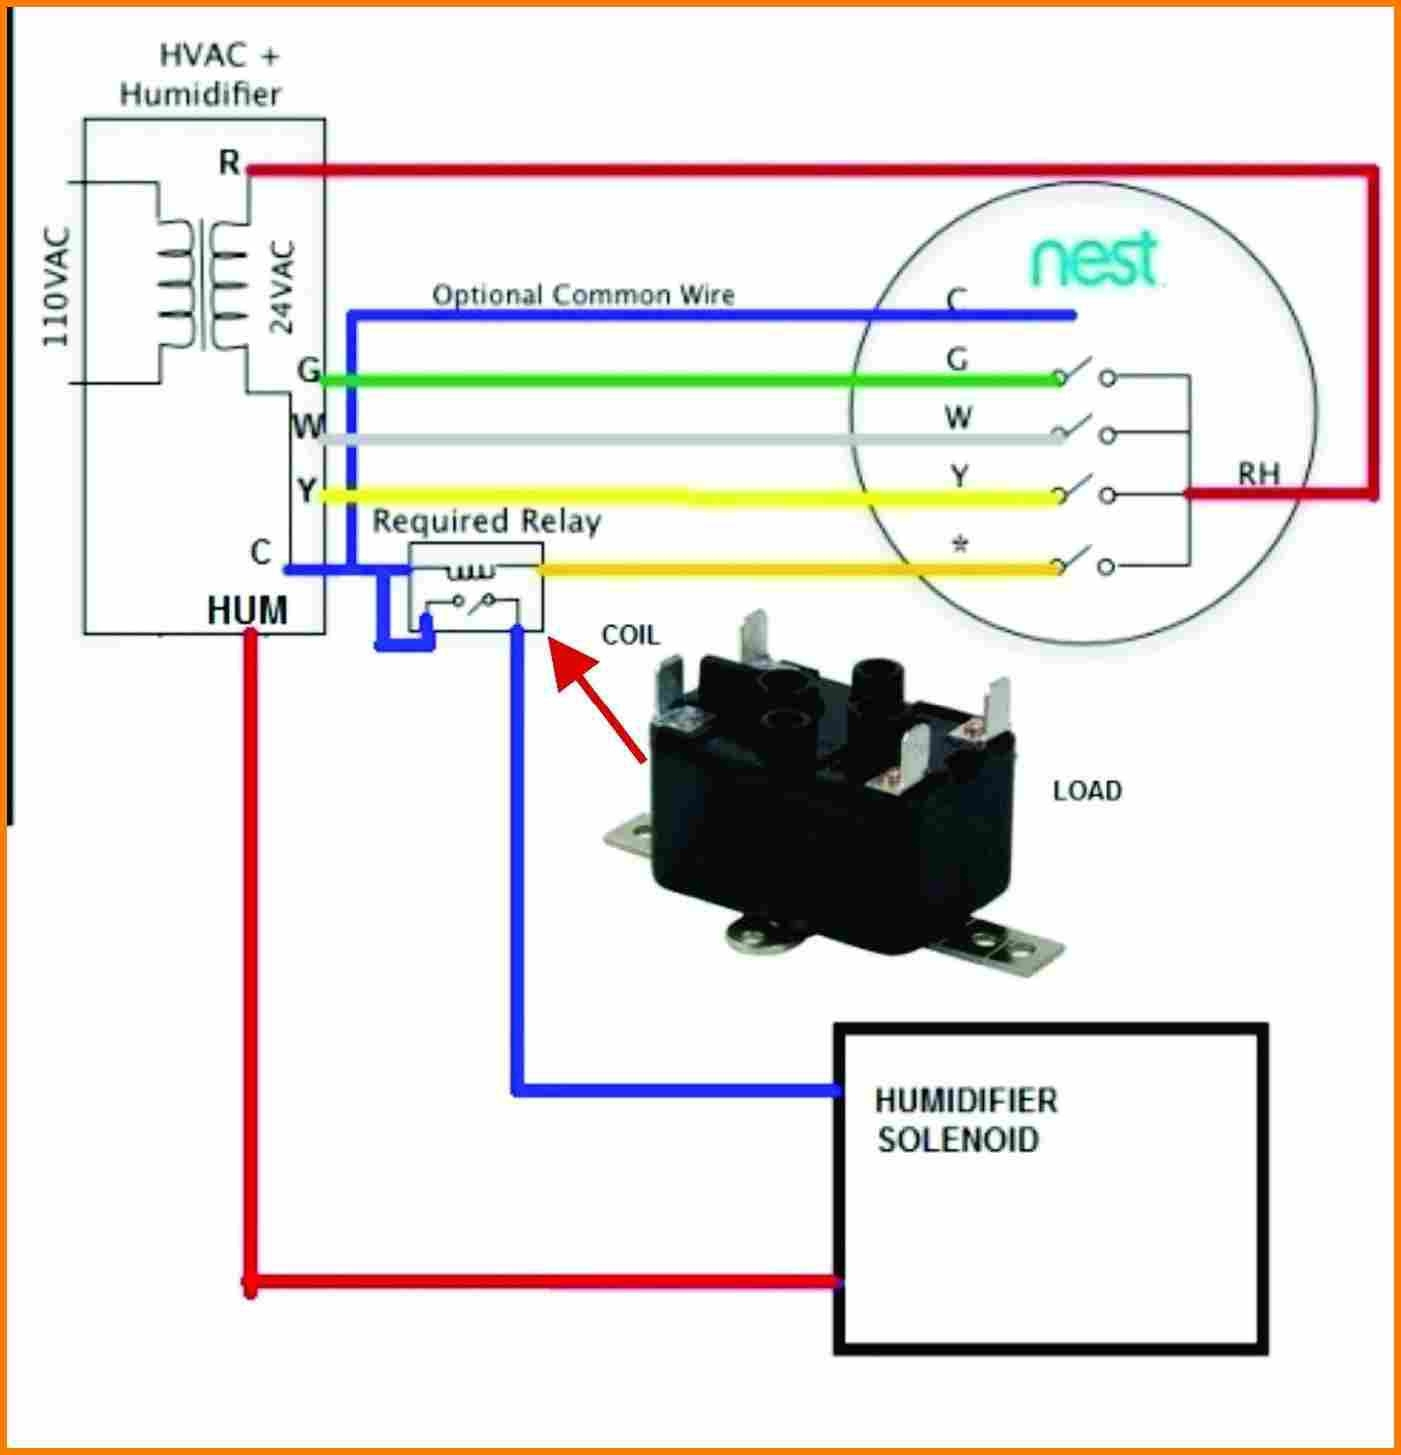 Nest Learning Thermostat Wiring Diagram - All Wiring Diagram - Simple Nest Thermostat Wiring Diagram